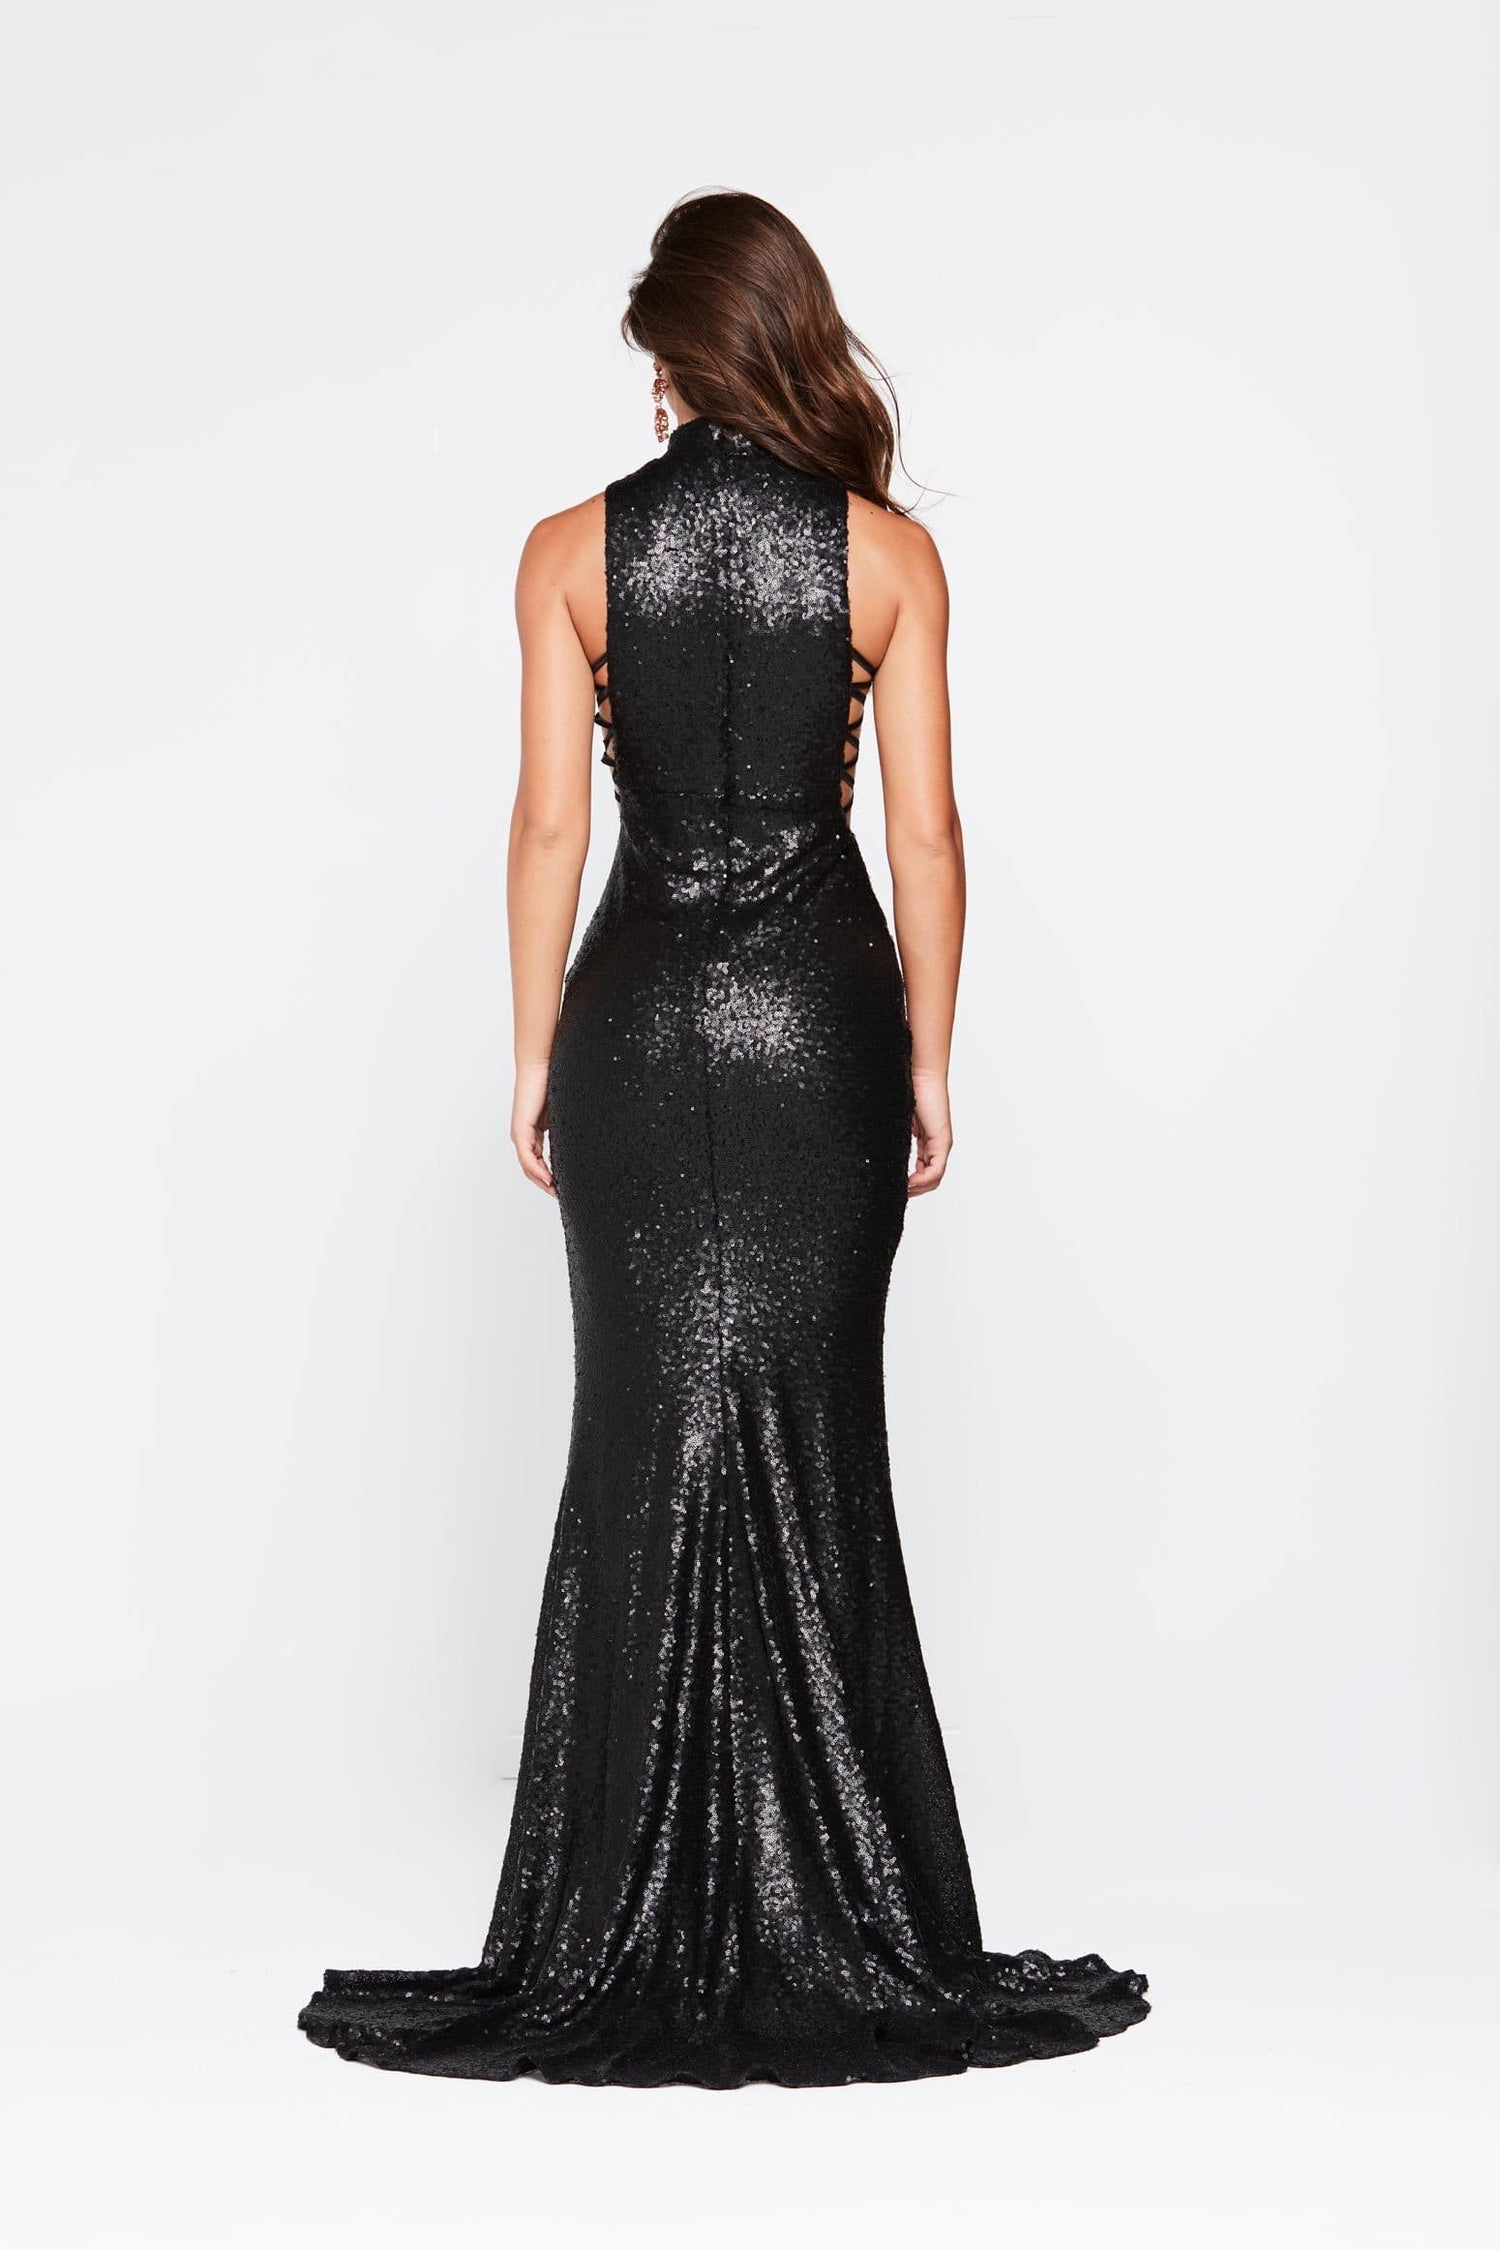 A&N Zuzu - Black Sequin Gown with High Neckline and Side Cut Outs